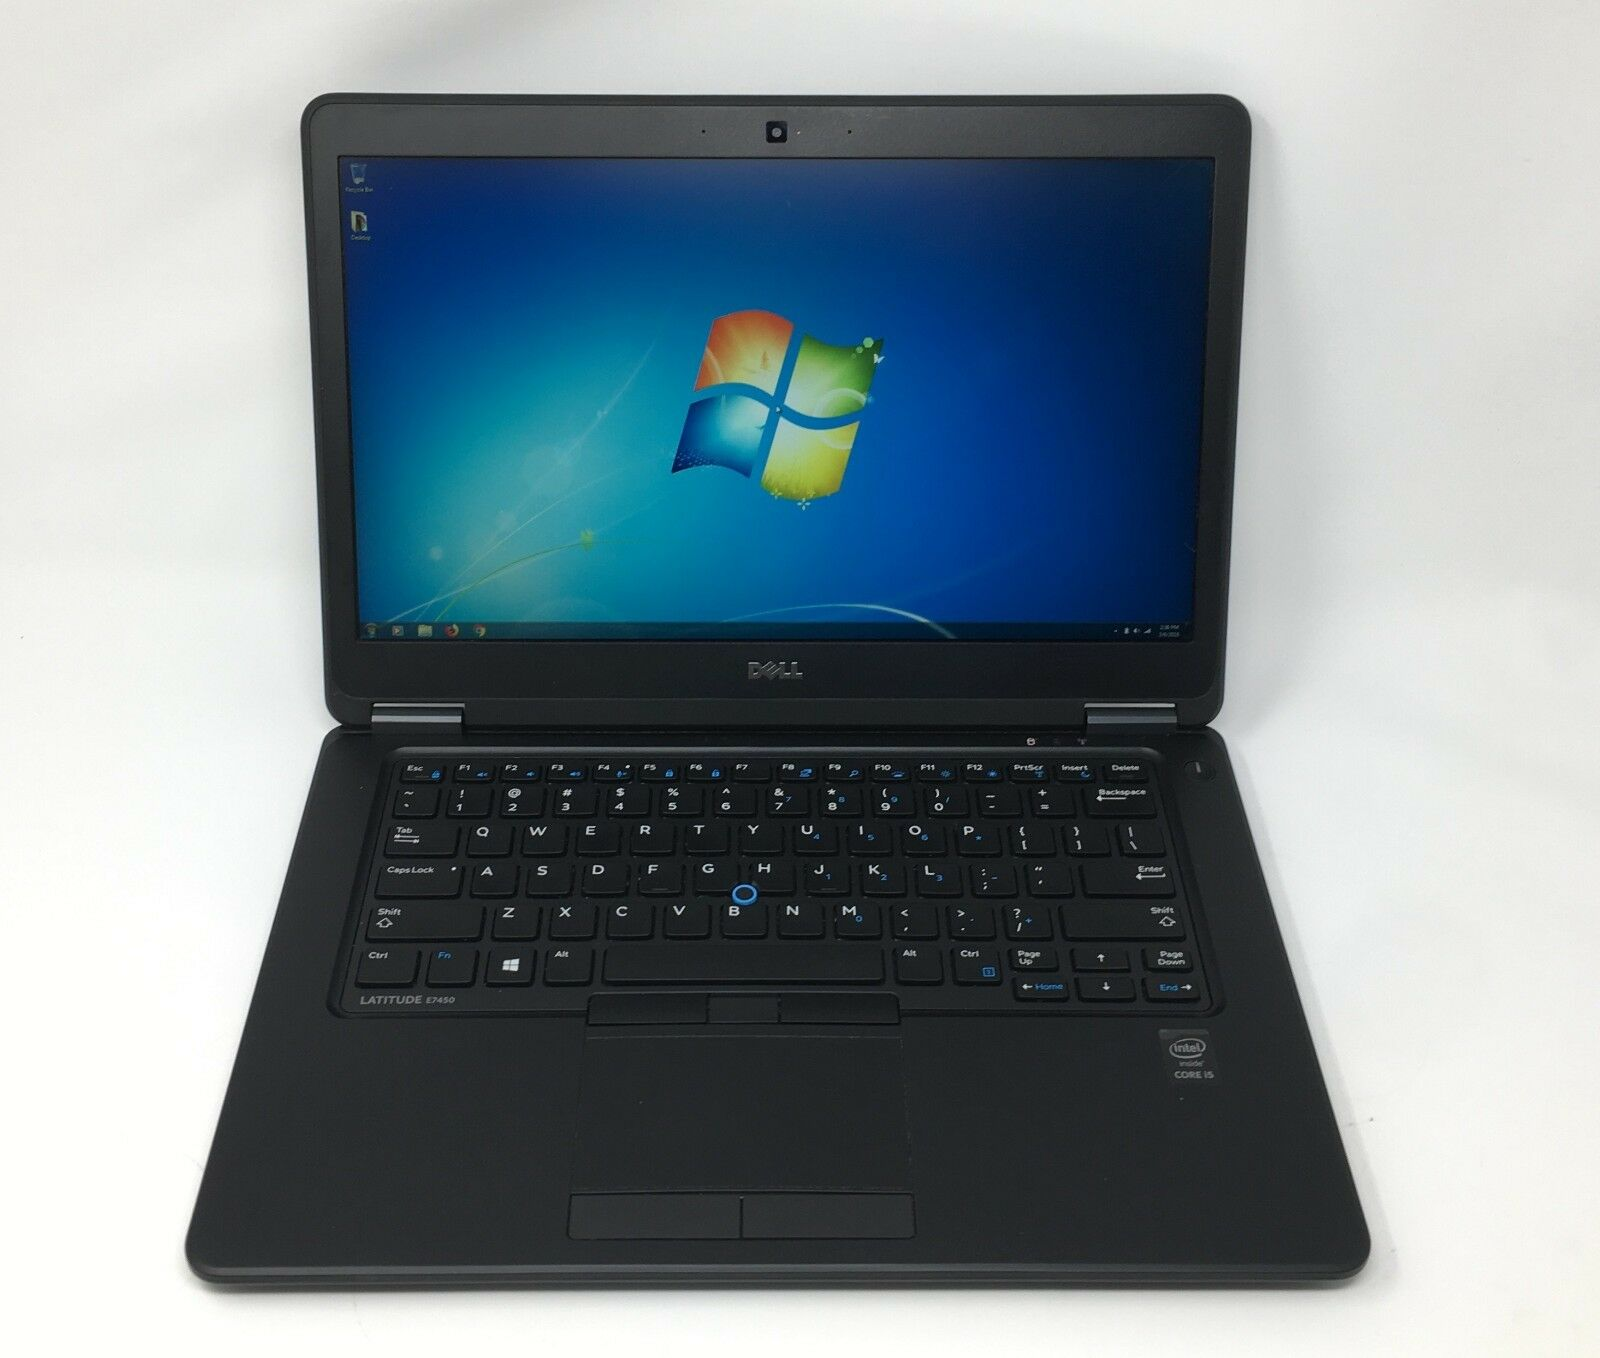 Dell Ultrabook E7450 Core i5-5300u 2.3GHz 8GB 256GB SSD Webcam 1080p Win7 Laptop